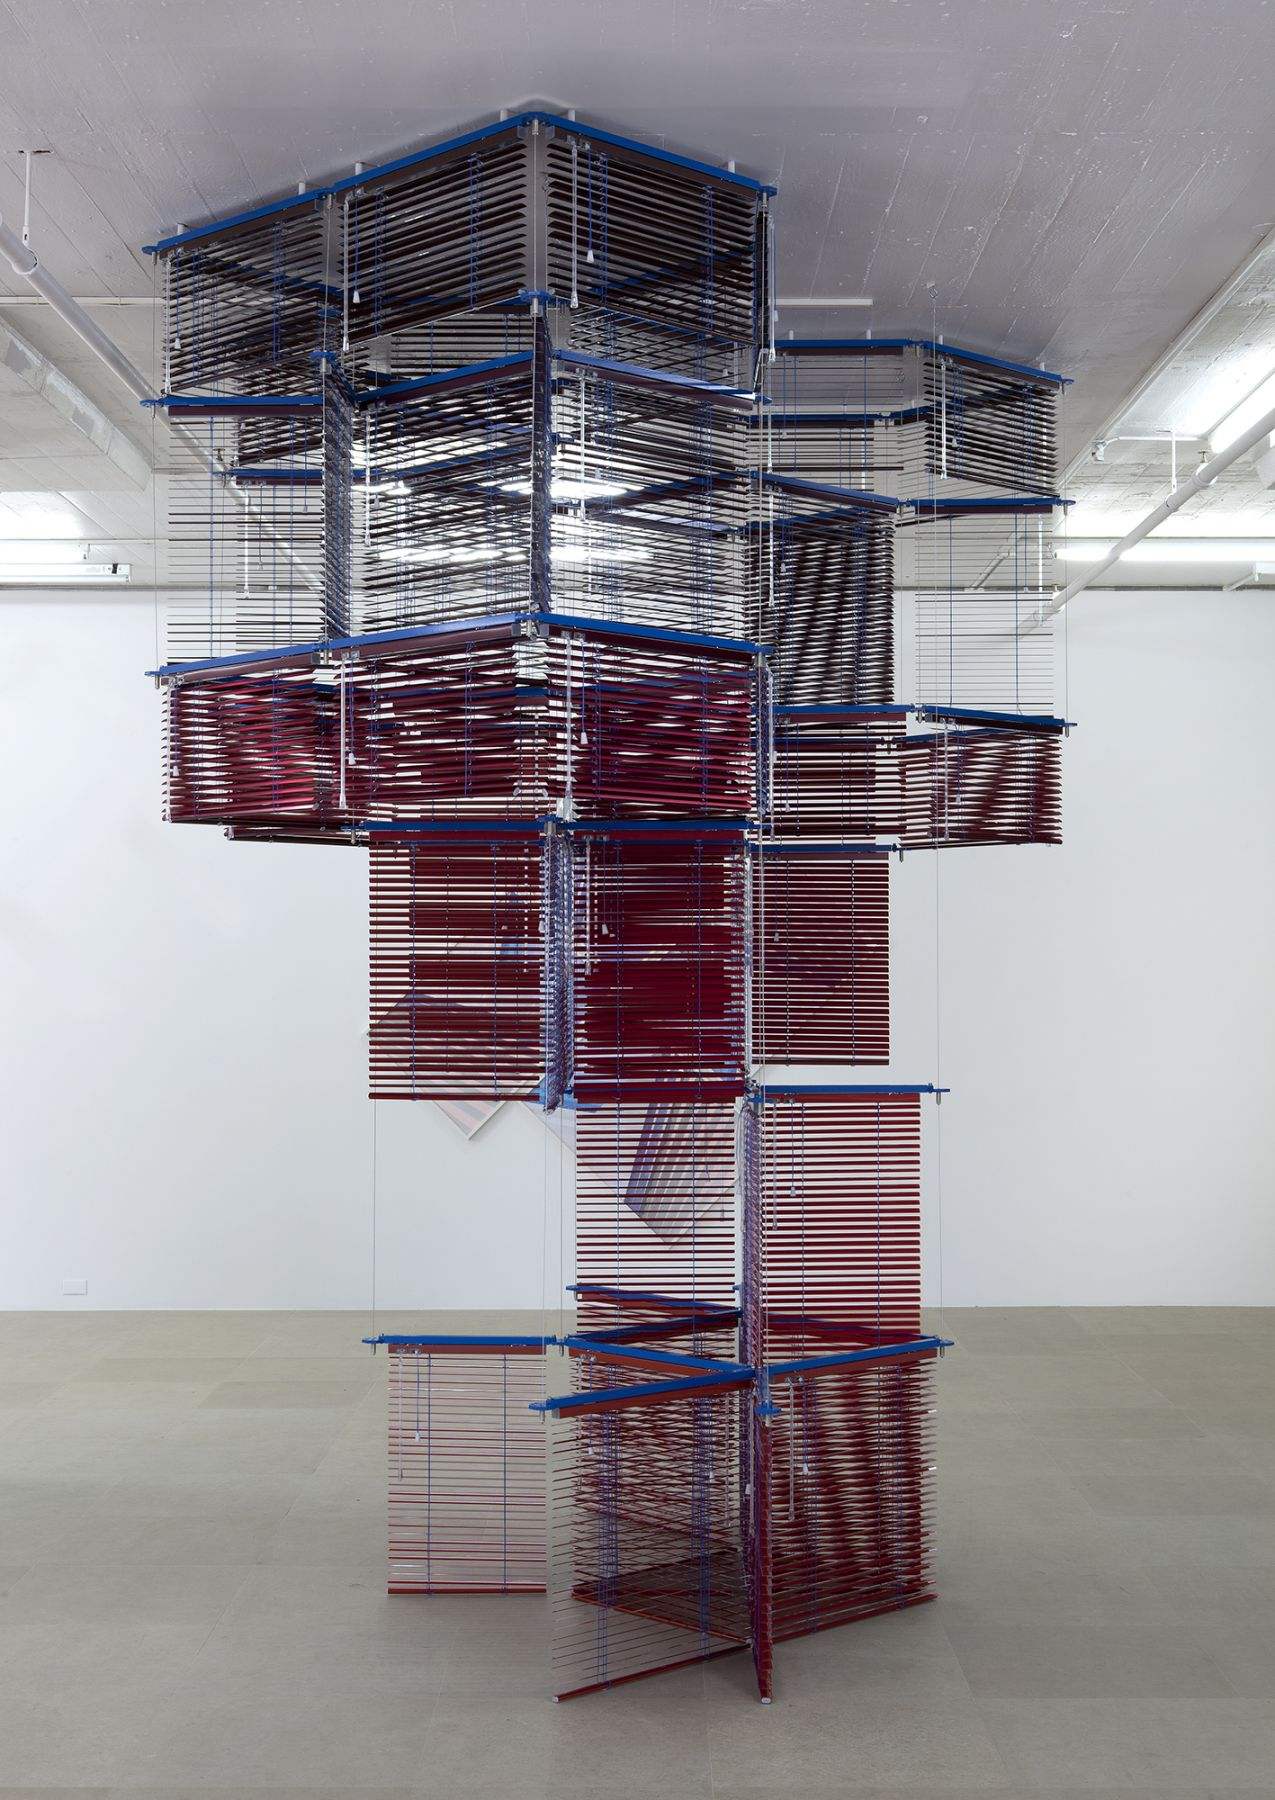 Haegue Yang Tower on String - Facing New York, 2012 Aluminum Venetian blinds, powder-coated aluminum frame 137 x 120 x 100 inches (348 x 304.8 x 254 cm)